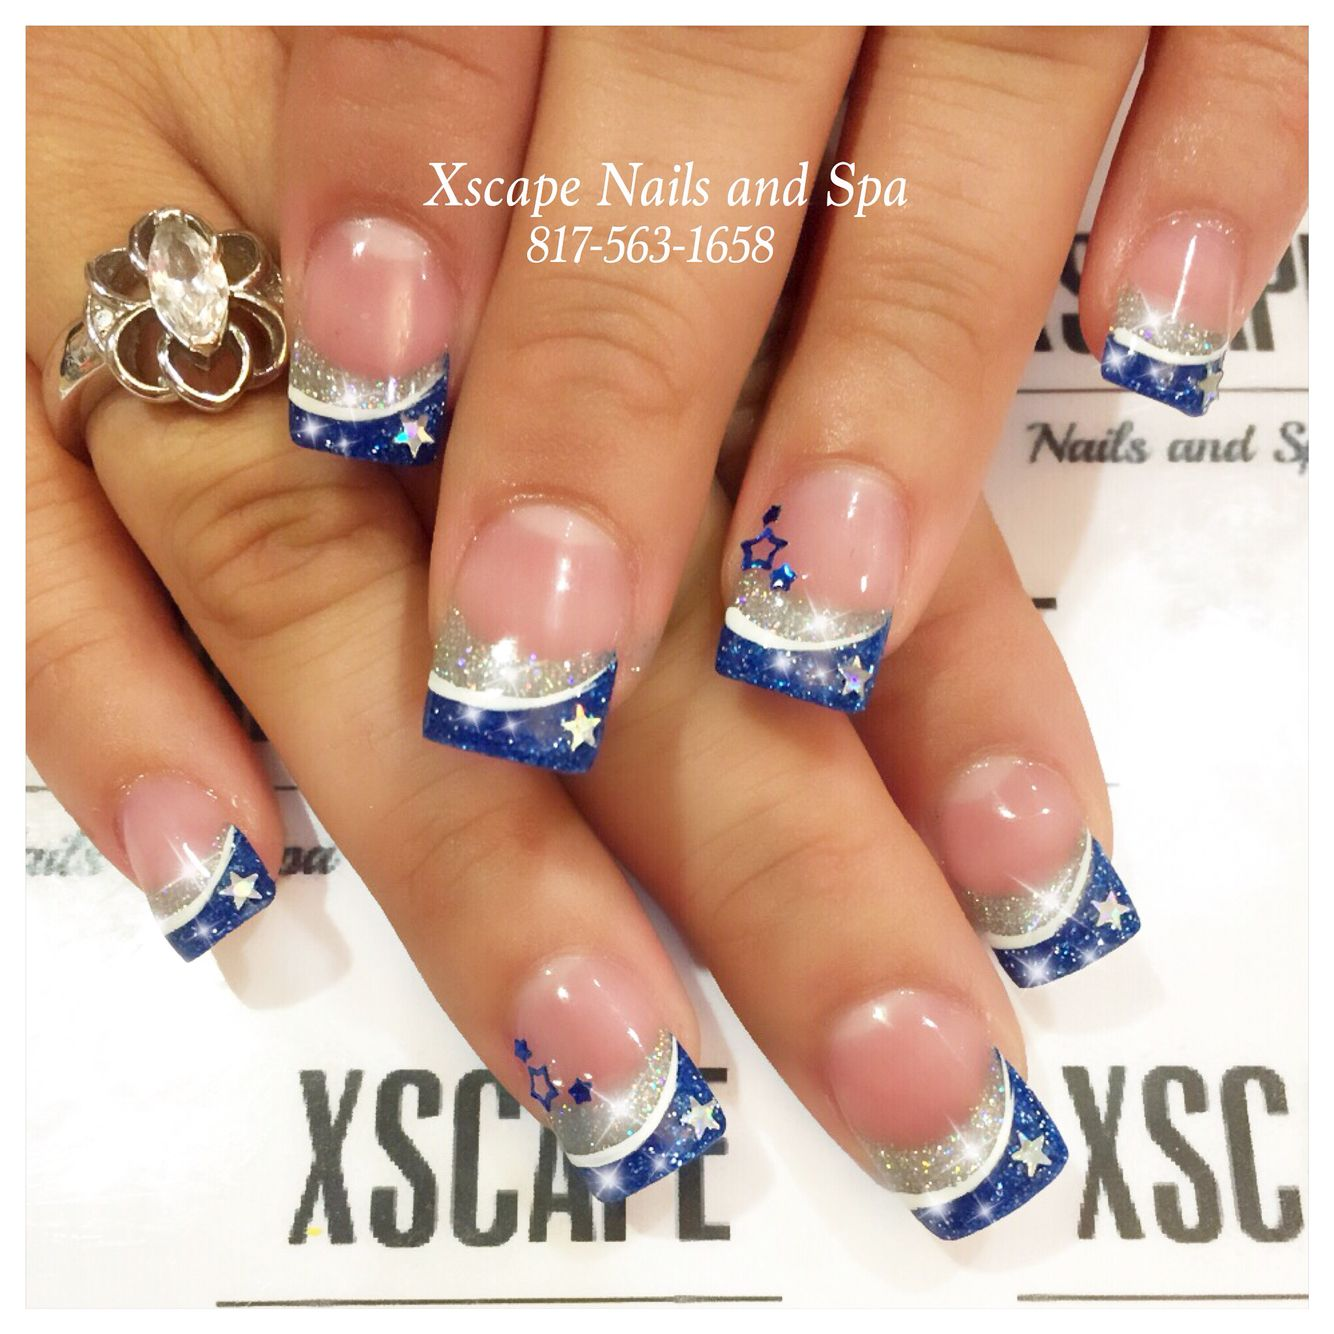 Dallas Cowboys Nails Short Nails Art Pinterest Dallas Cowboys